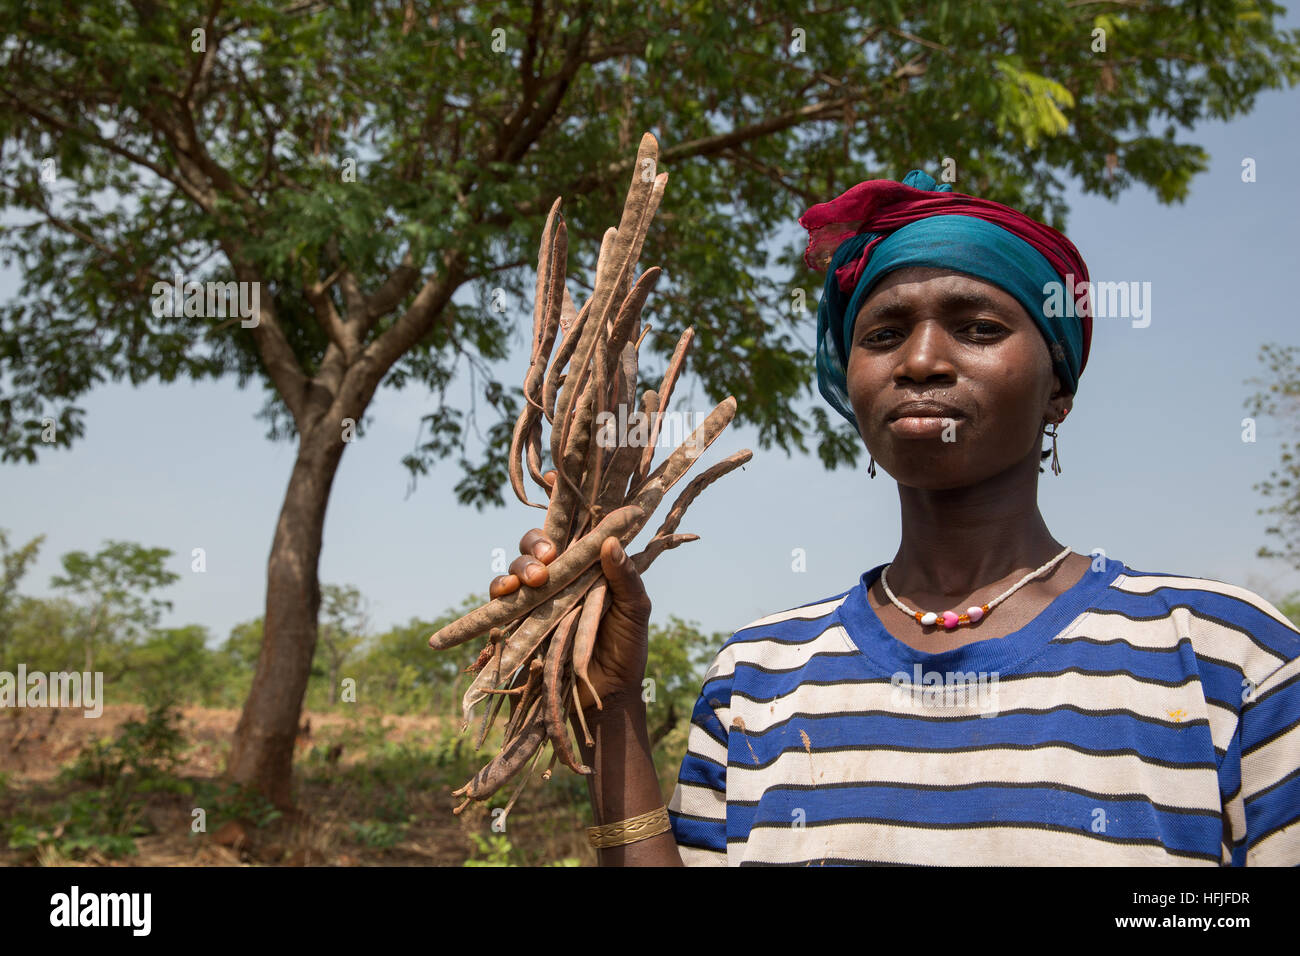 Koumban village, Guinea, 2nd May 2015. Mariama Condé, 35 with 4 children, is cutting néré fruit with - Stock Image